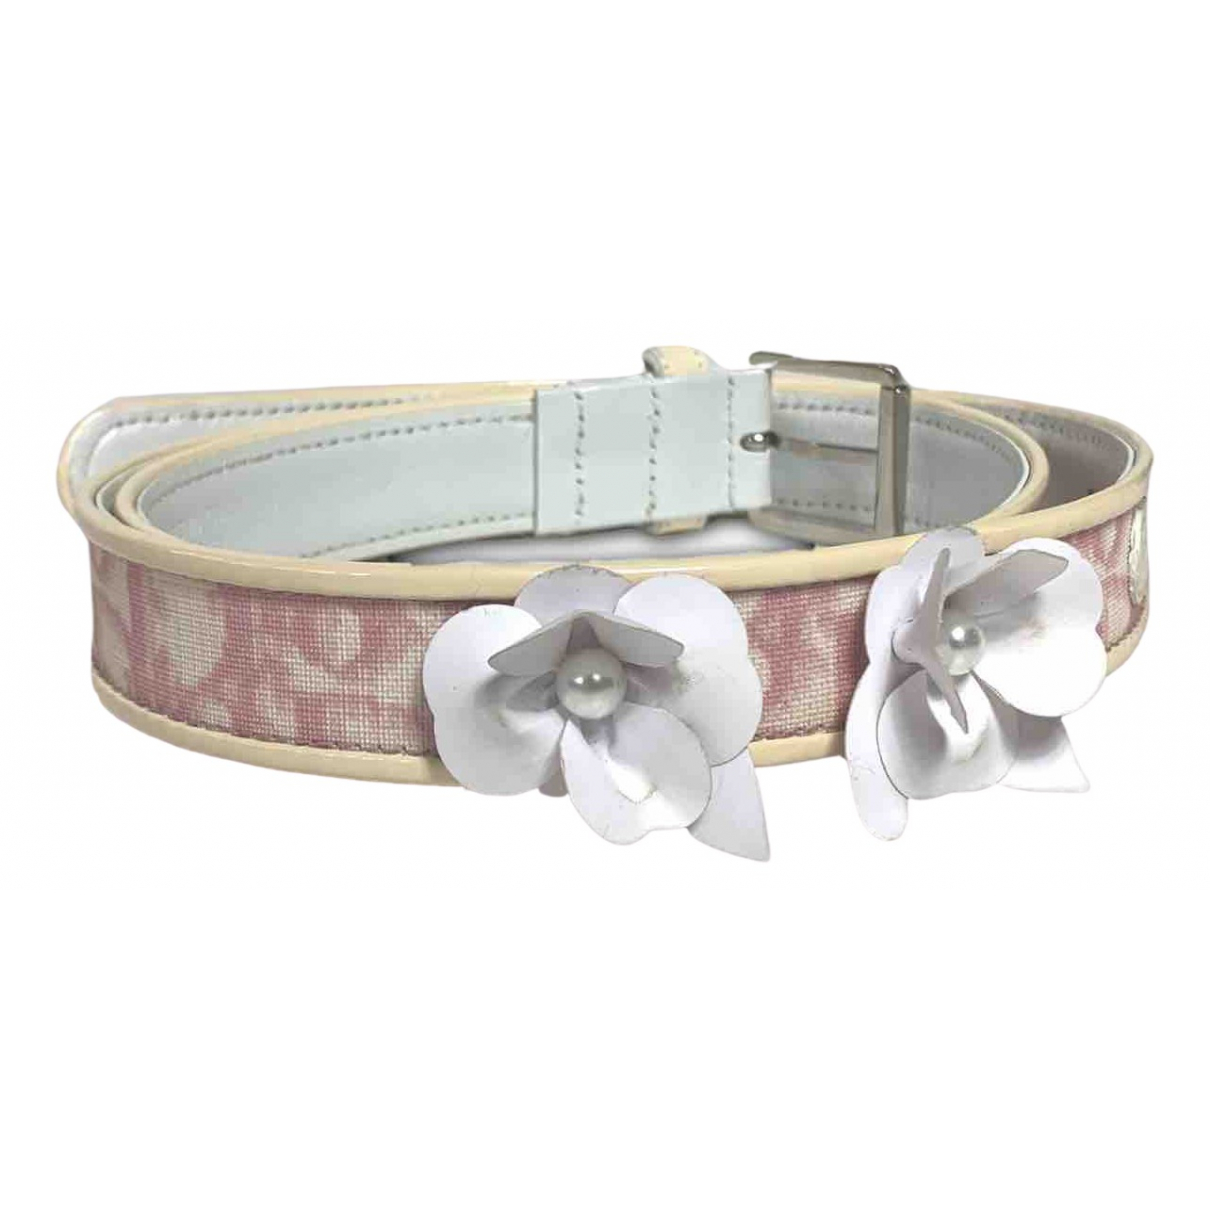 Dior N Pink Cloth belt for Women 29 Inches